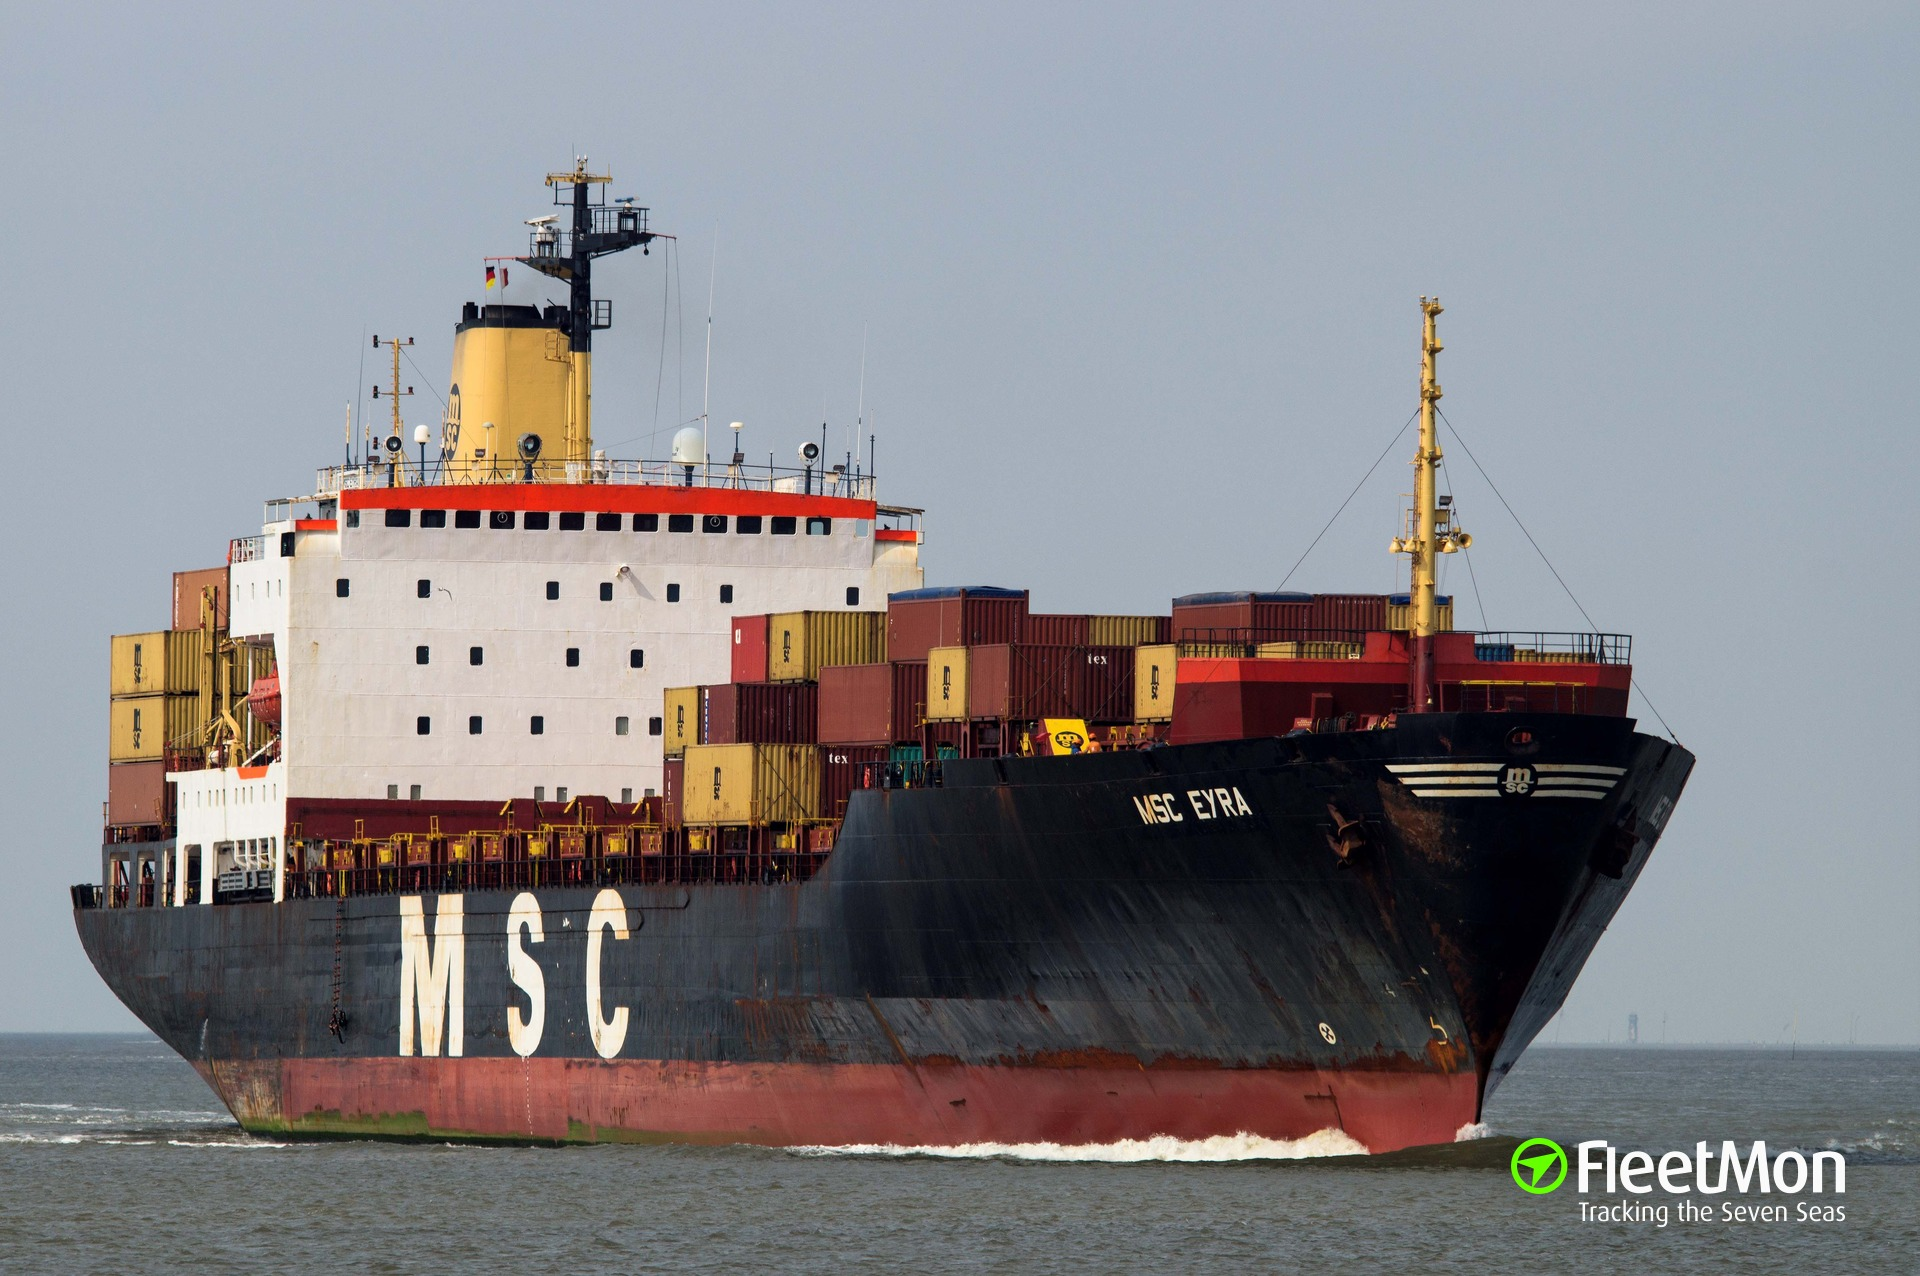 Container ship MSC EYRA troubled, 1 crew injured, 1 container lost, North sea